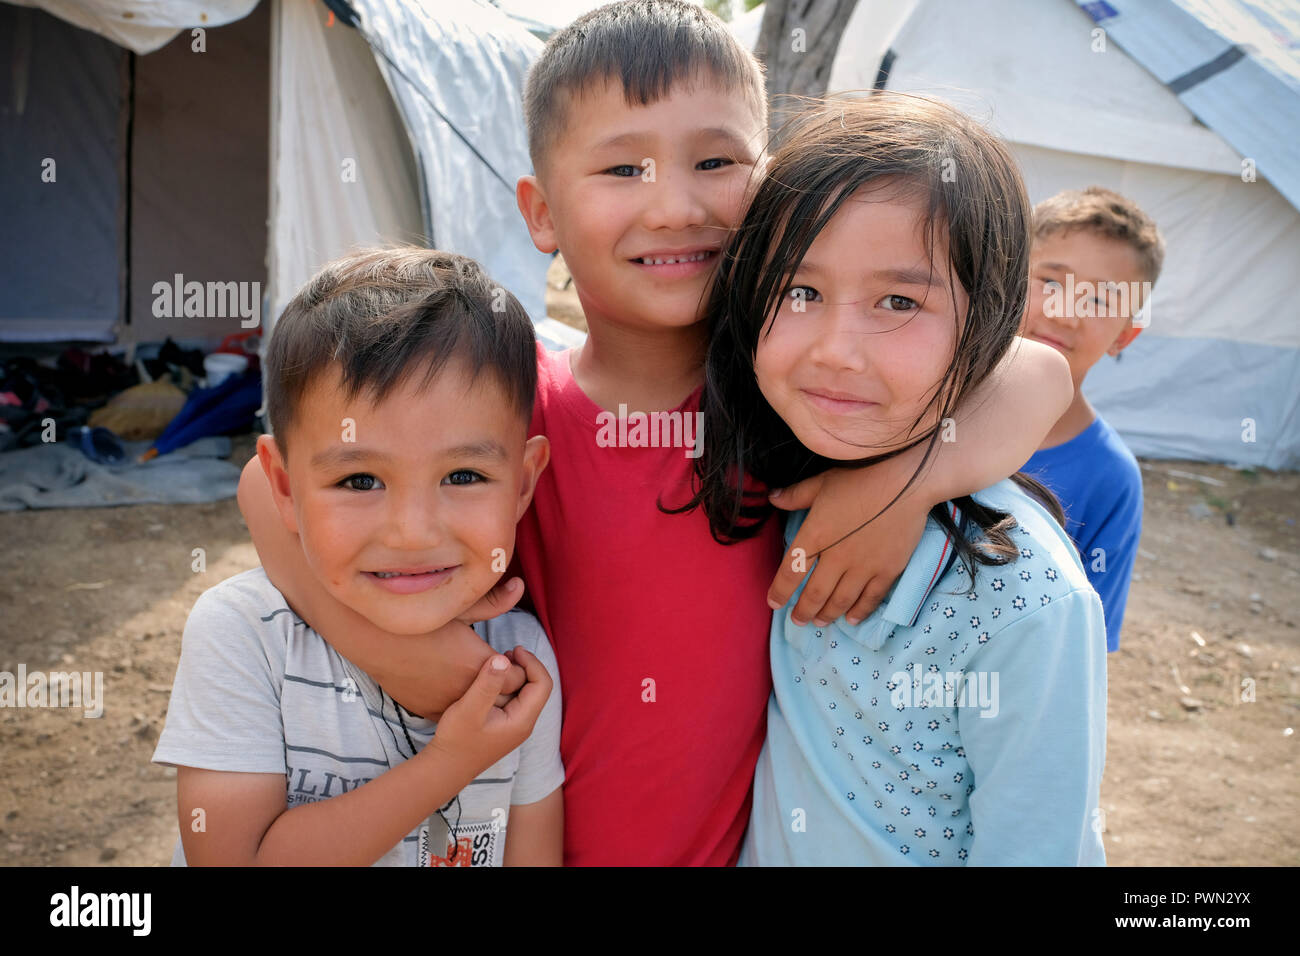 Refugee children from Syria and Afghanistan in front of the tents next to the camp MORIA CAMP for refugees. Island of Lesbos, Greece, May 2018 - Flüchtlingskinder aus Syrien und Afghanistan vor den Zelten  neben dem Lager MORIA CAMP für Flüchtlinge. Insel Lesbos, Griechenland, Mai 2018 - Stock Image